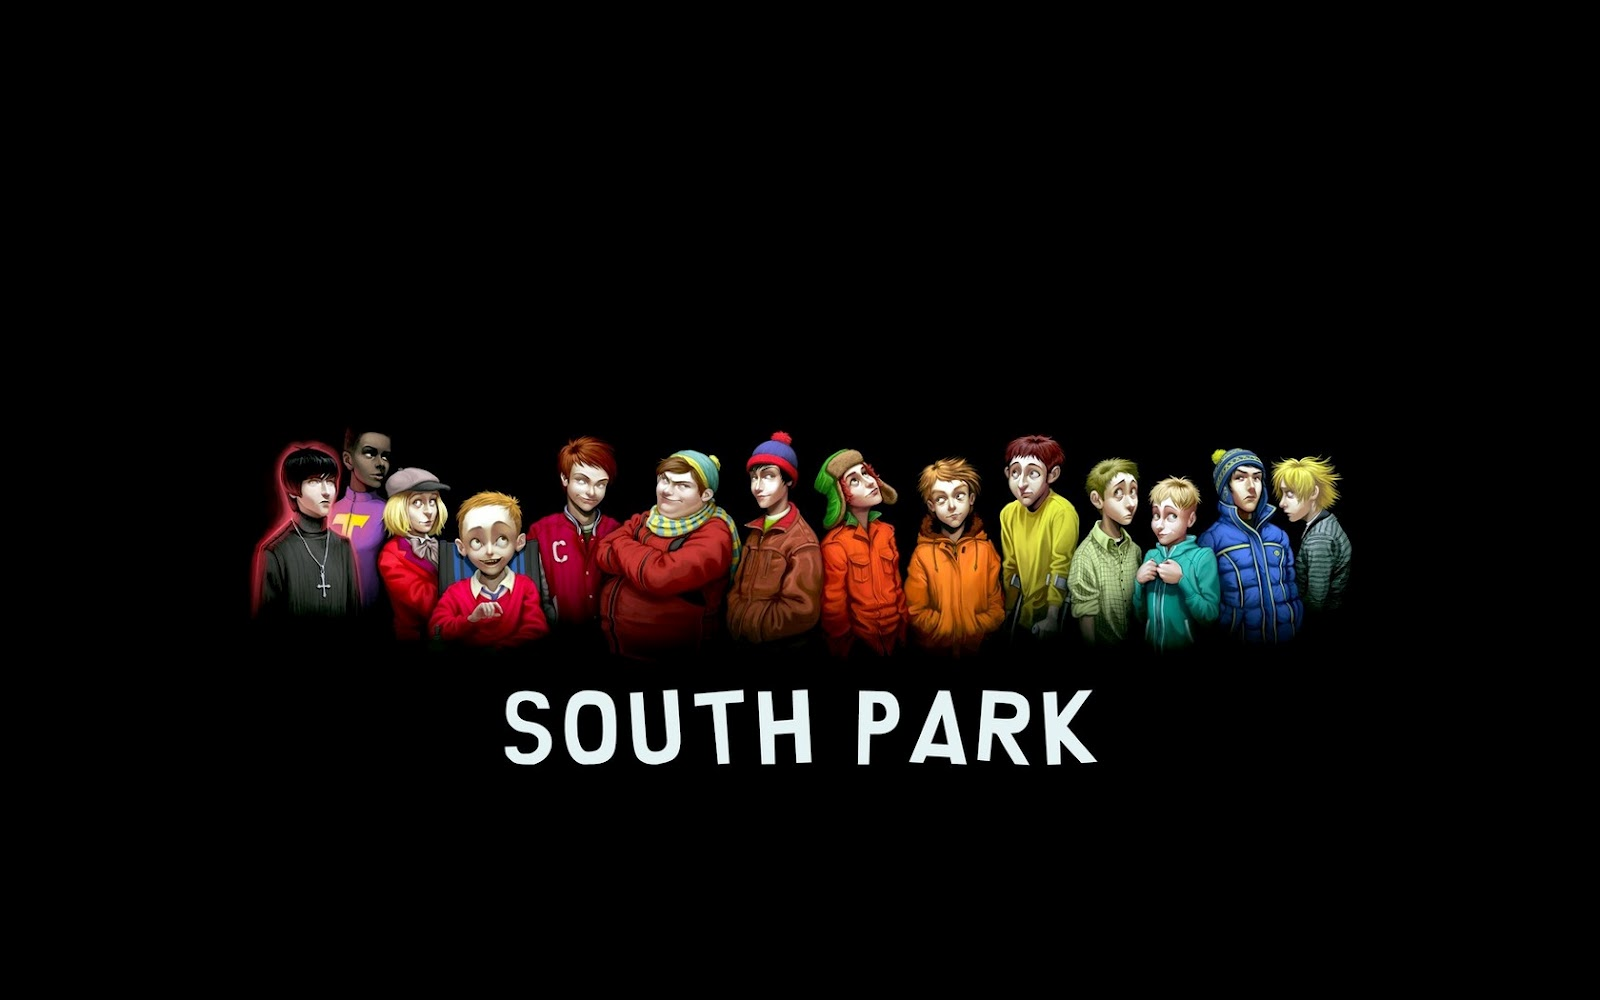 Funny South Park Characters HD Wallpapers Cartoon Wallpapers 1600x1000